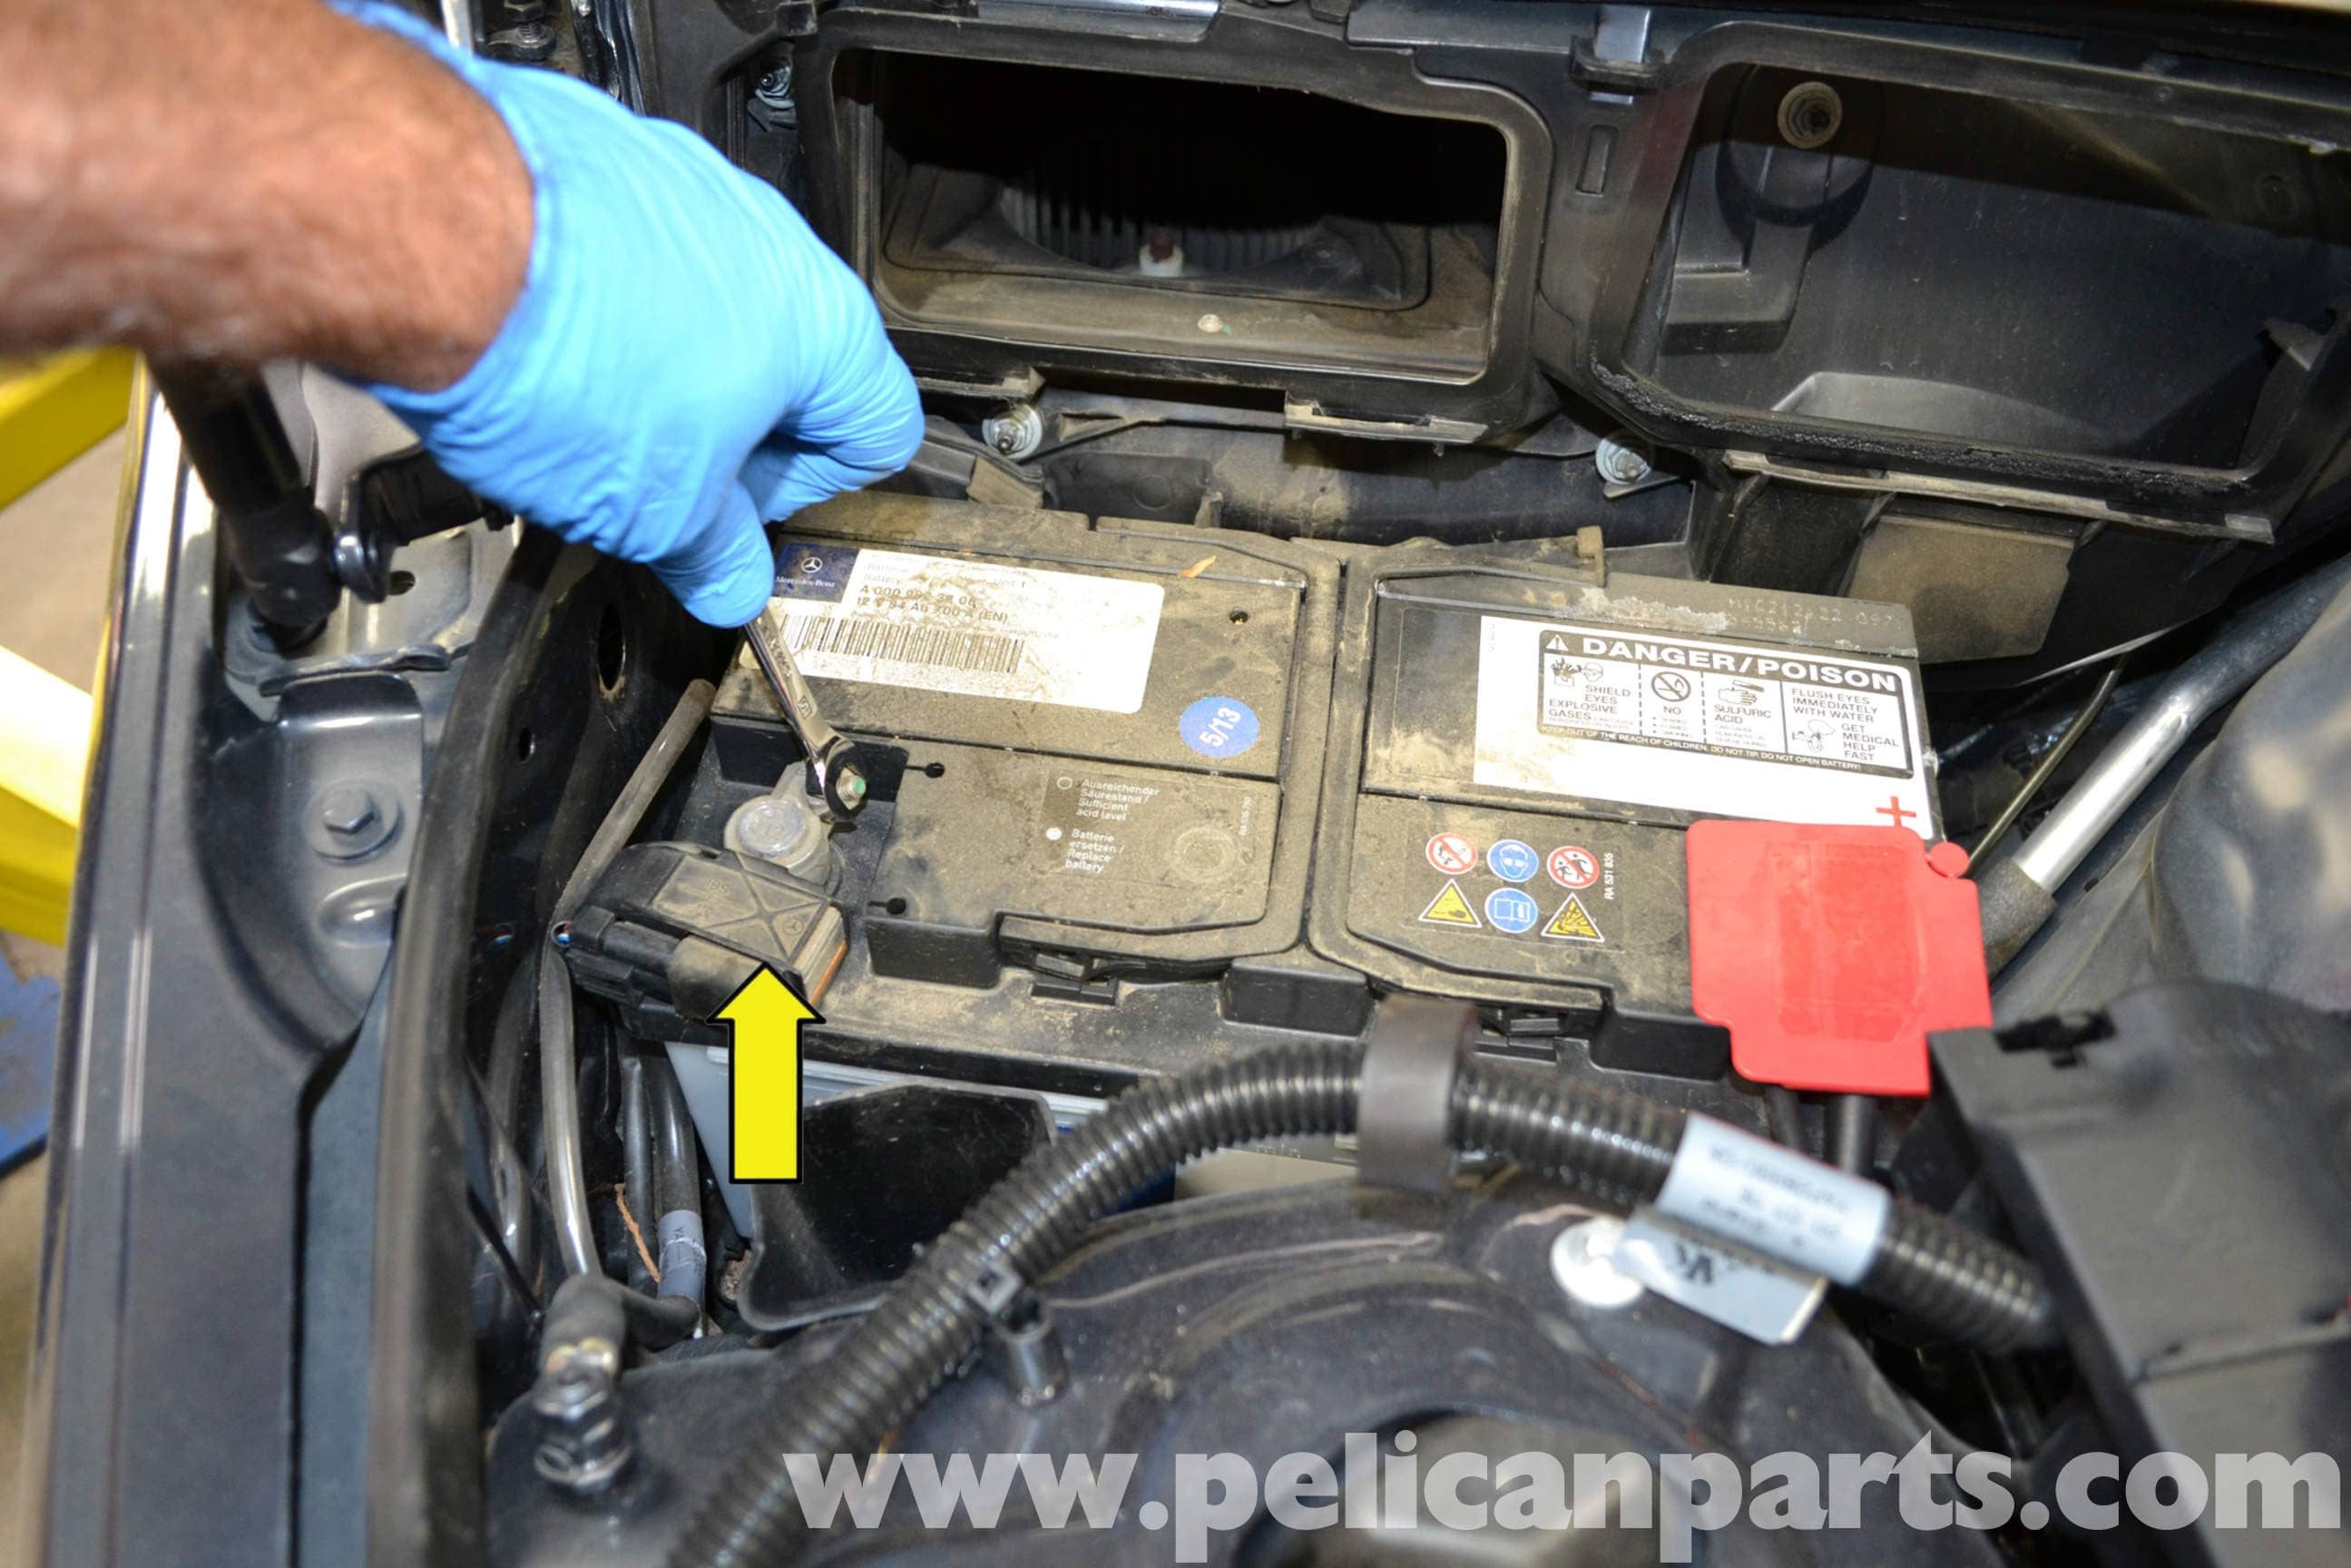 Mercedes benz w204 starter replacement 2008 2014 c250 for Mercedes benz c230 battery replacement